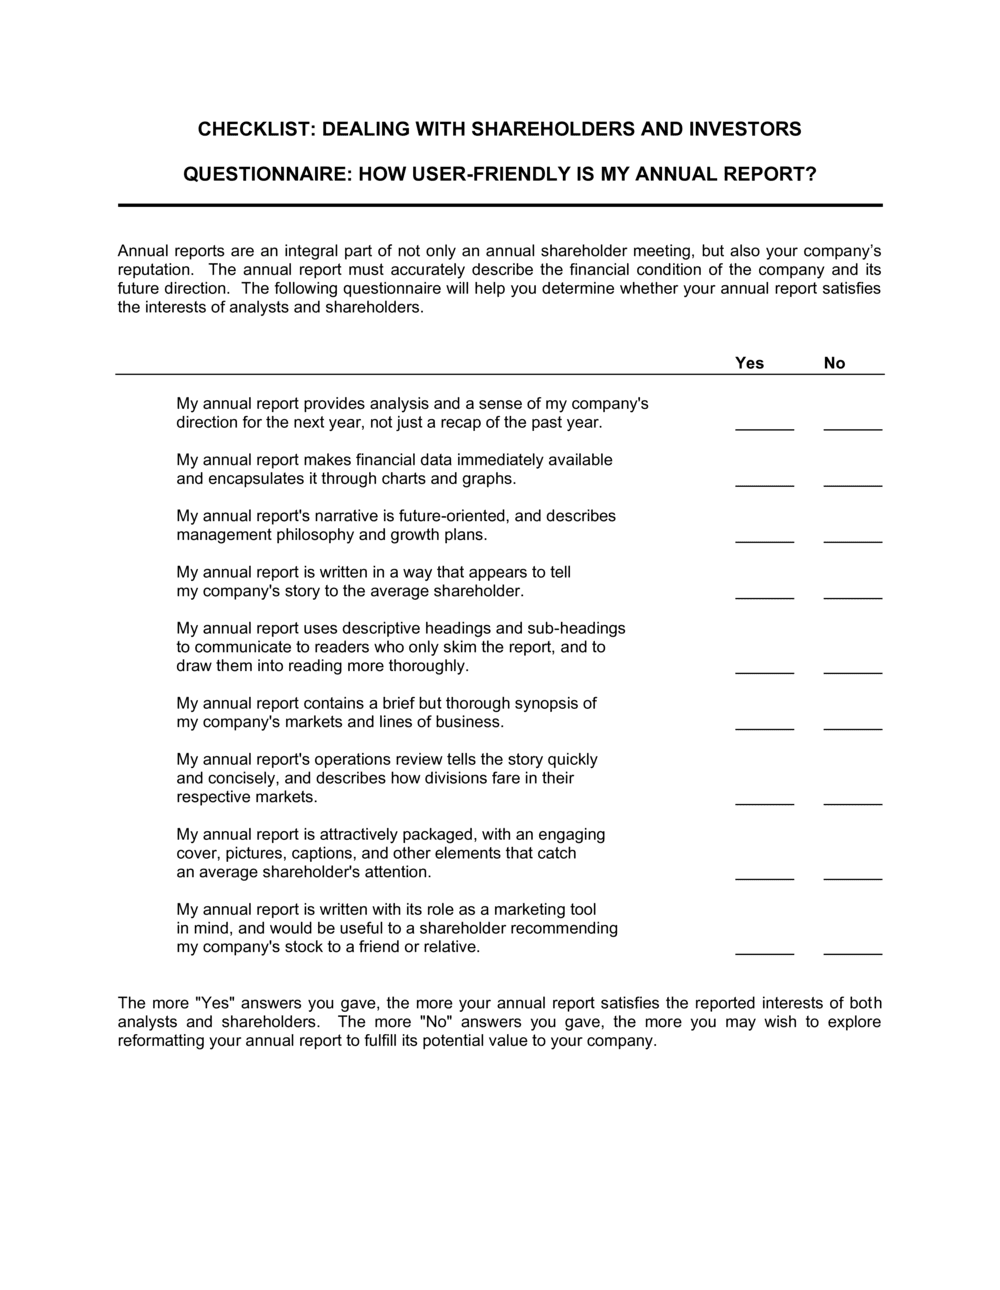 Business-in-a-Box's Checklist Dealing with Shareholders and Investors Template